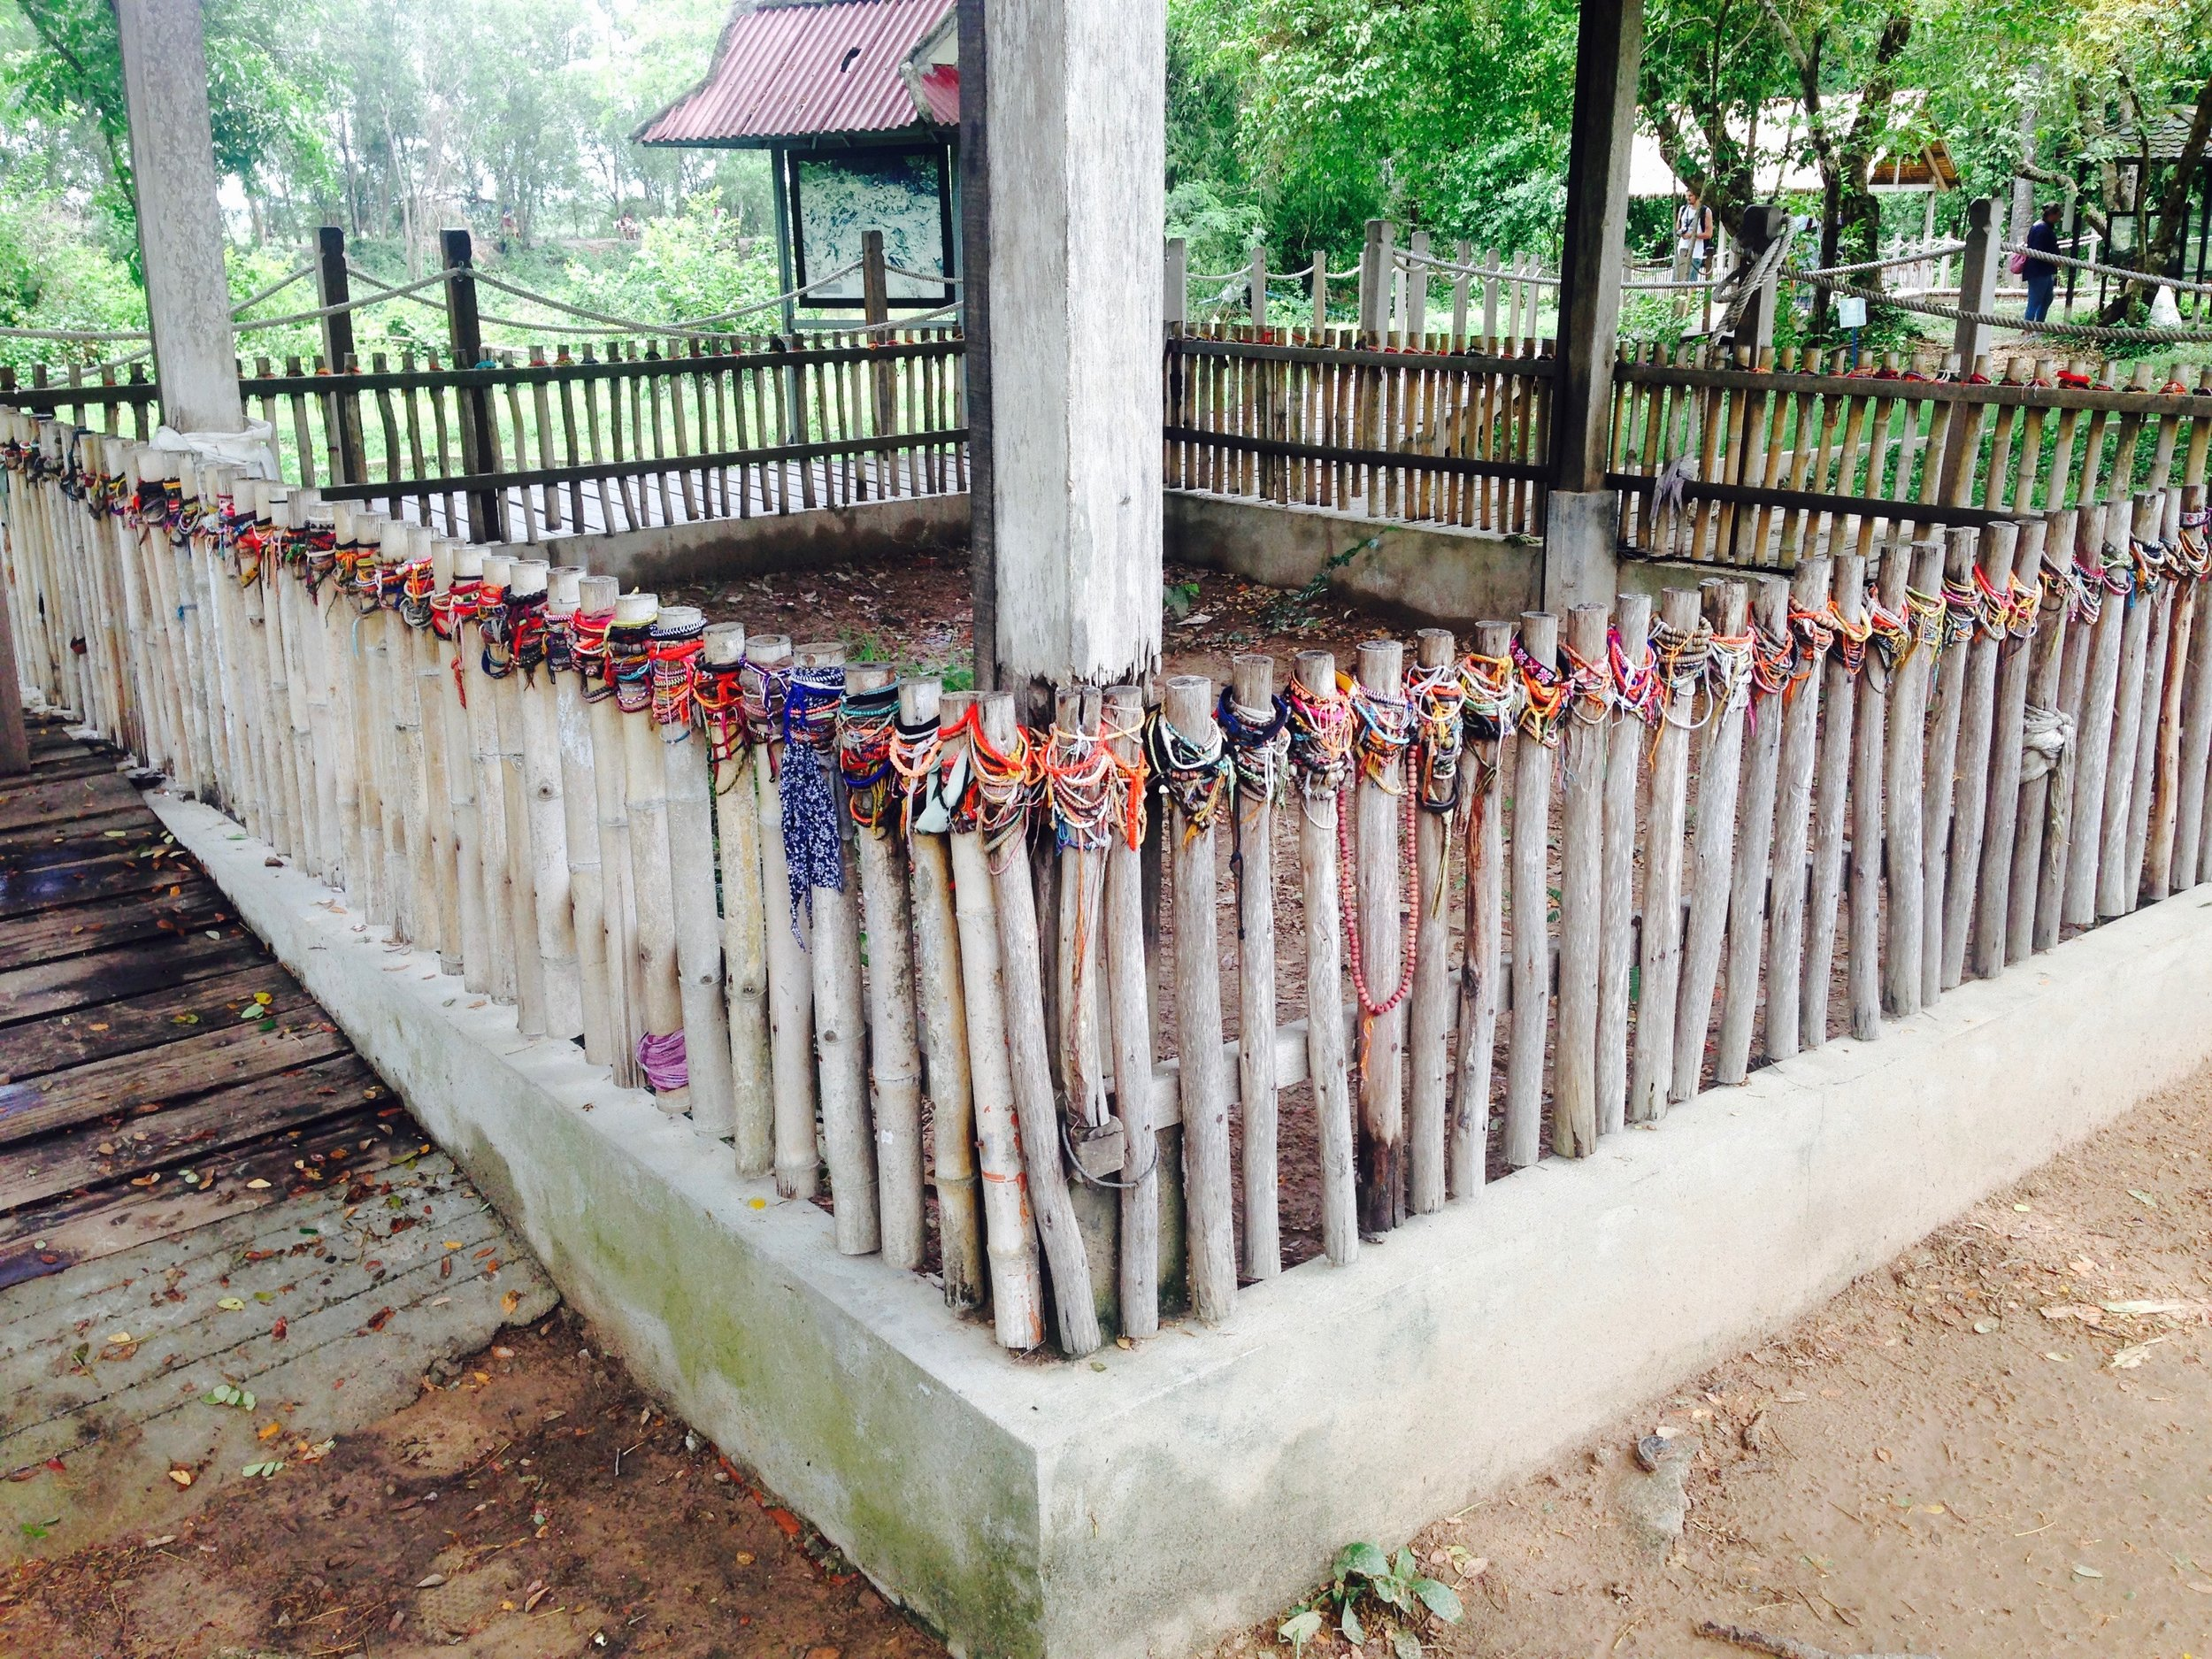 Former mass grave which I believe used to hold bodies of decapitated defectors of the Khmer Rouge